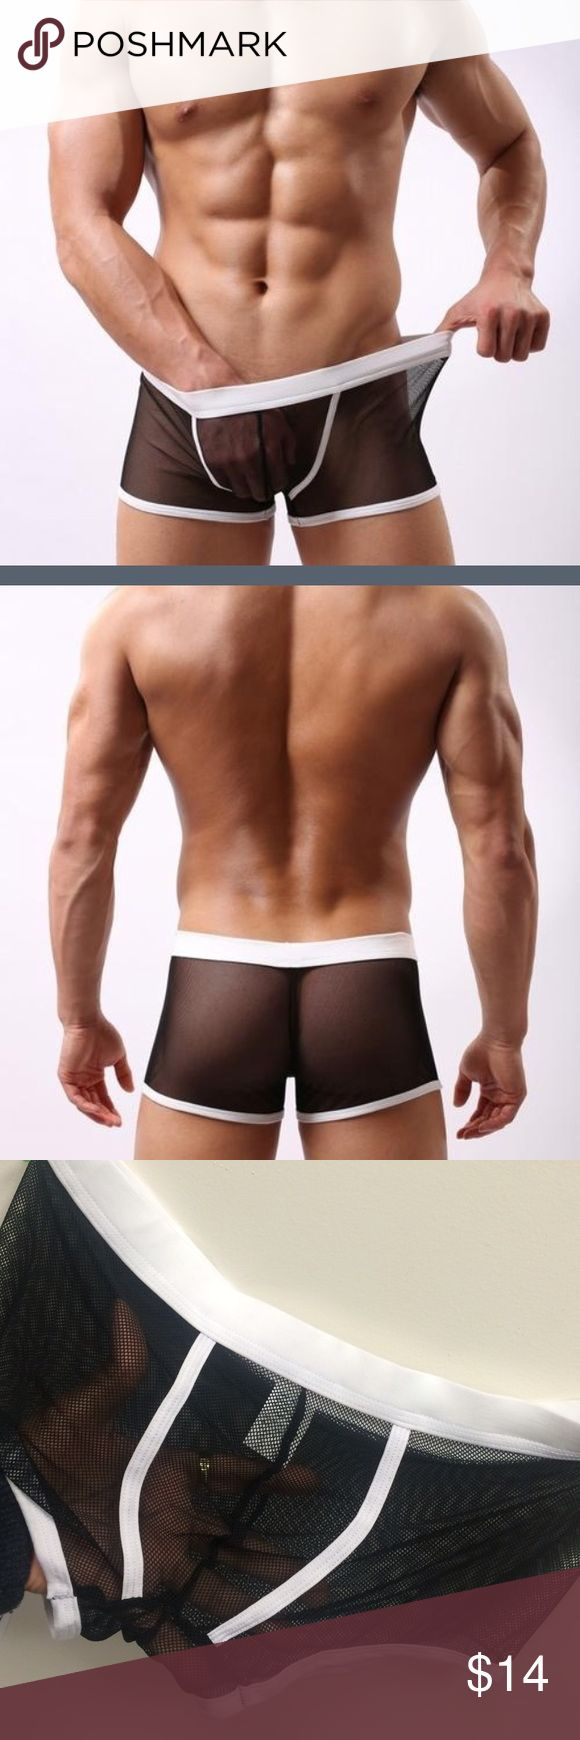 Sexy Men Fish Net Underwear Only have 1. Super stretch. Super soft. Underwear & Socks Boxer Briefs